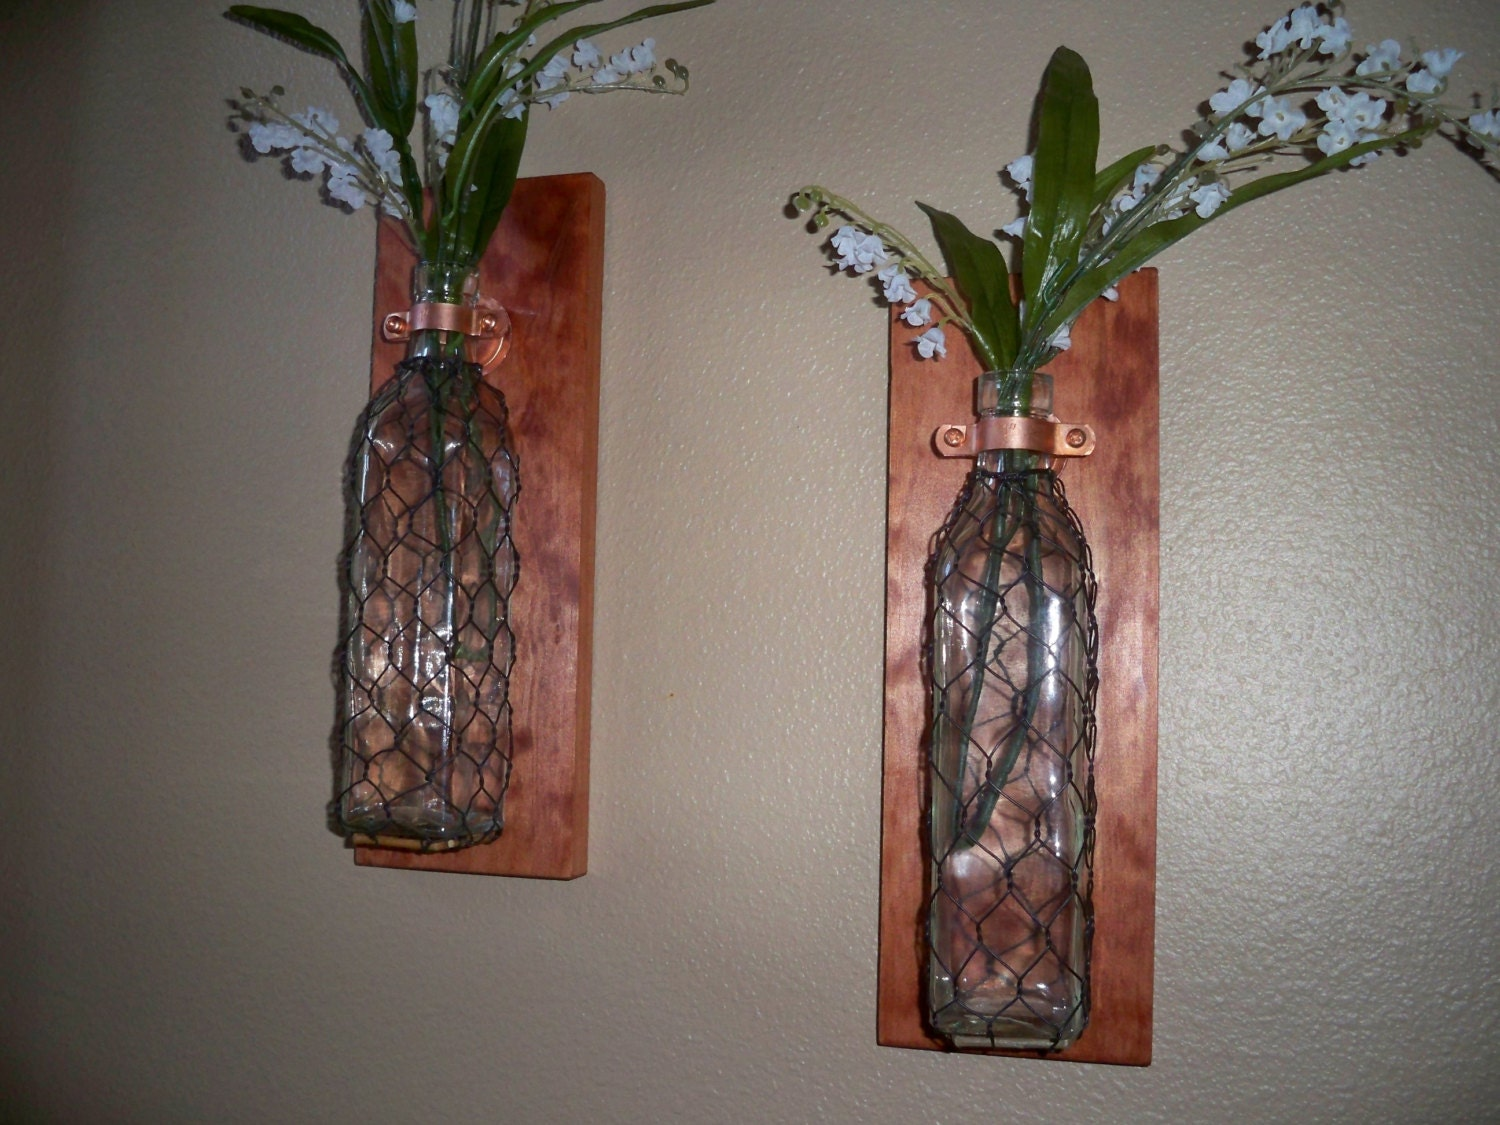 Rustic bathroom decor chicken wire primitive home decor vase for Bathroom decor vases